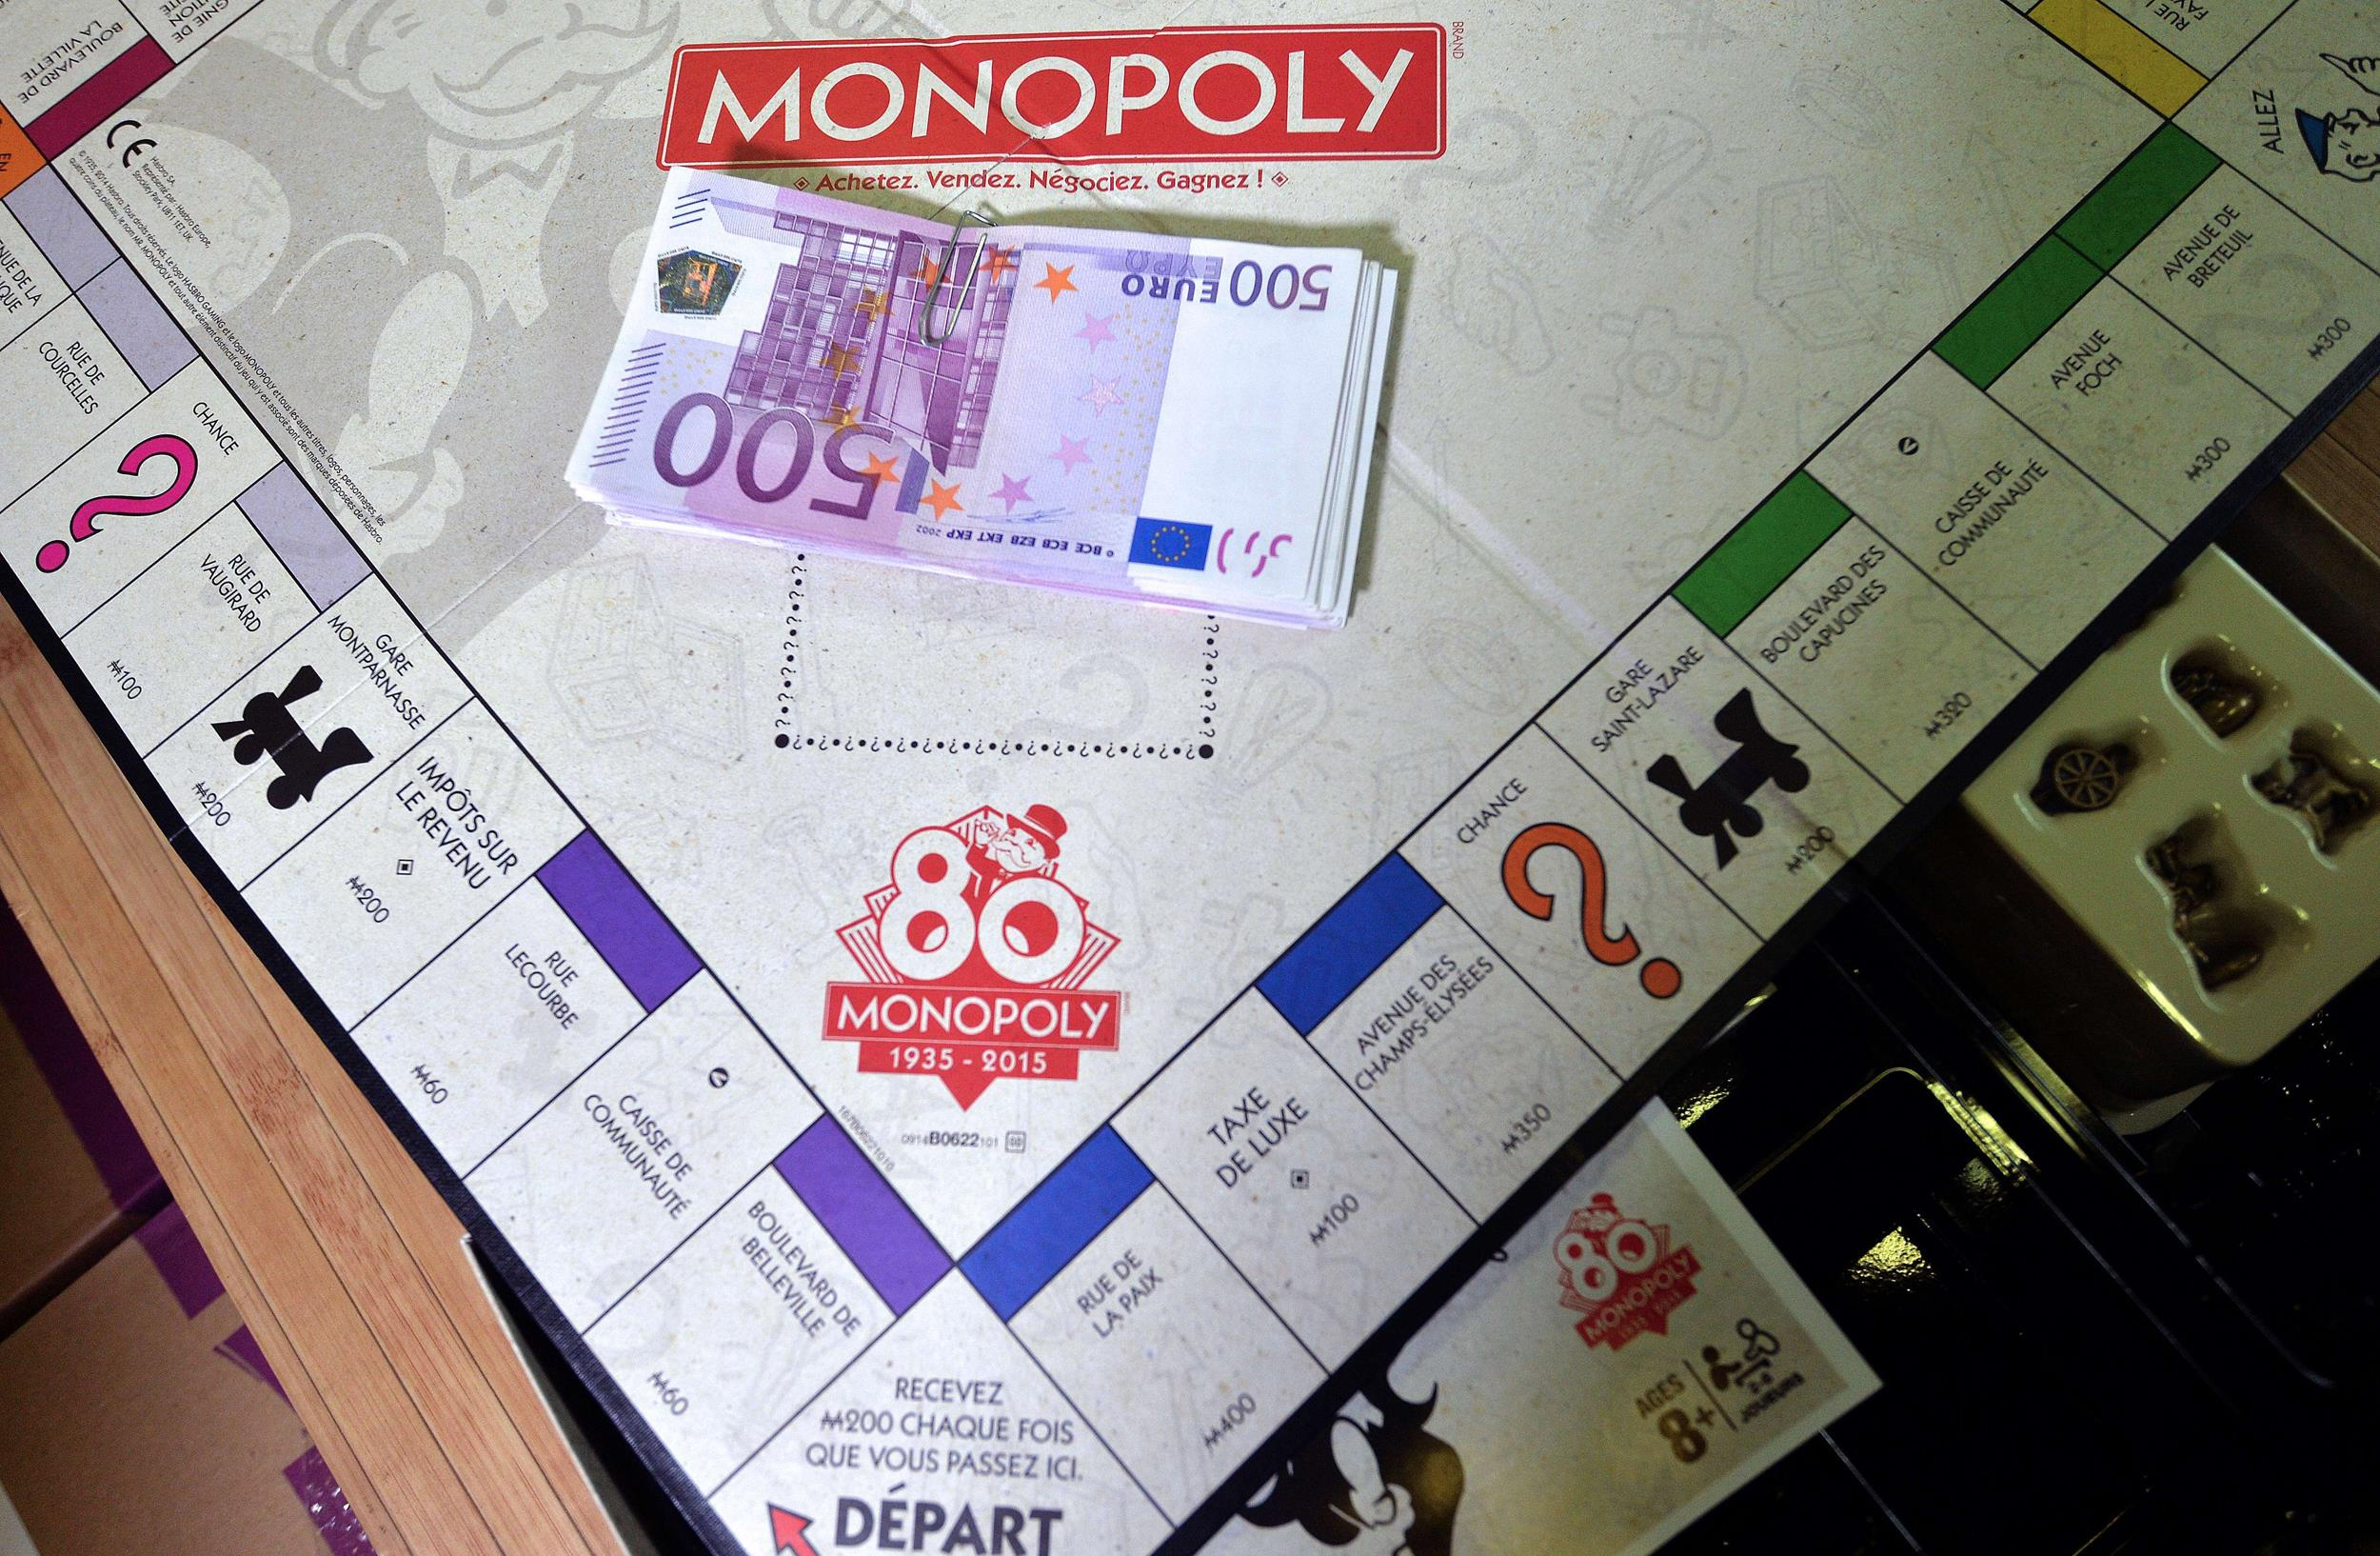 monopoly online real money